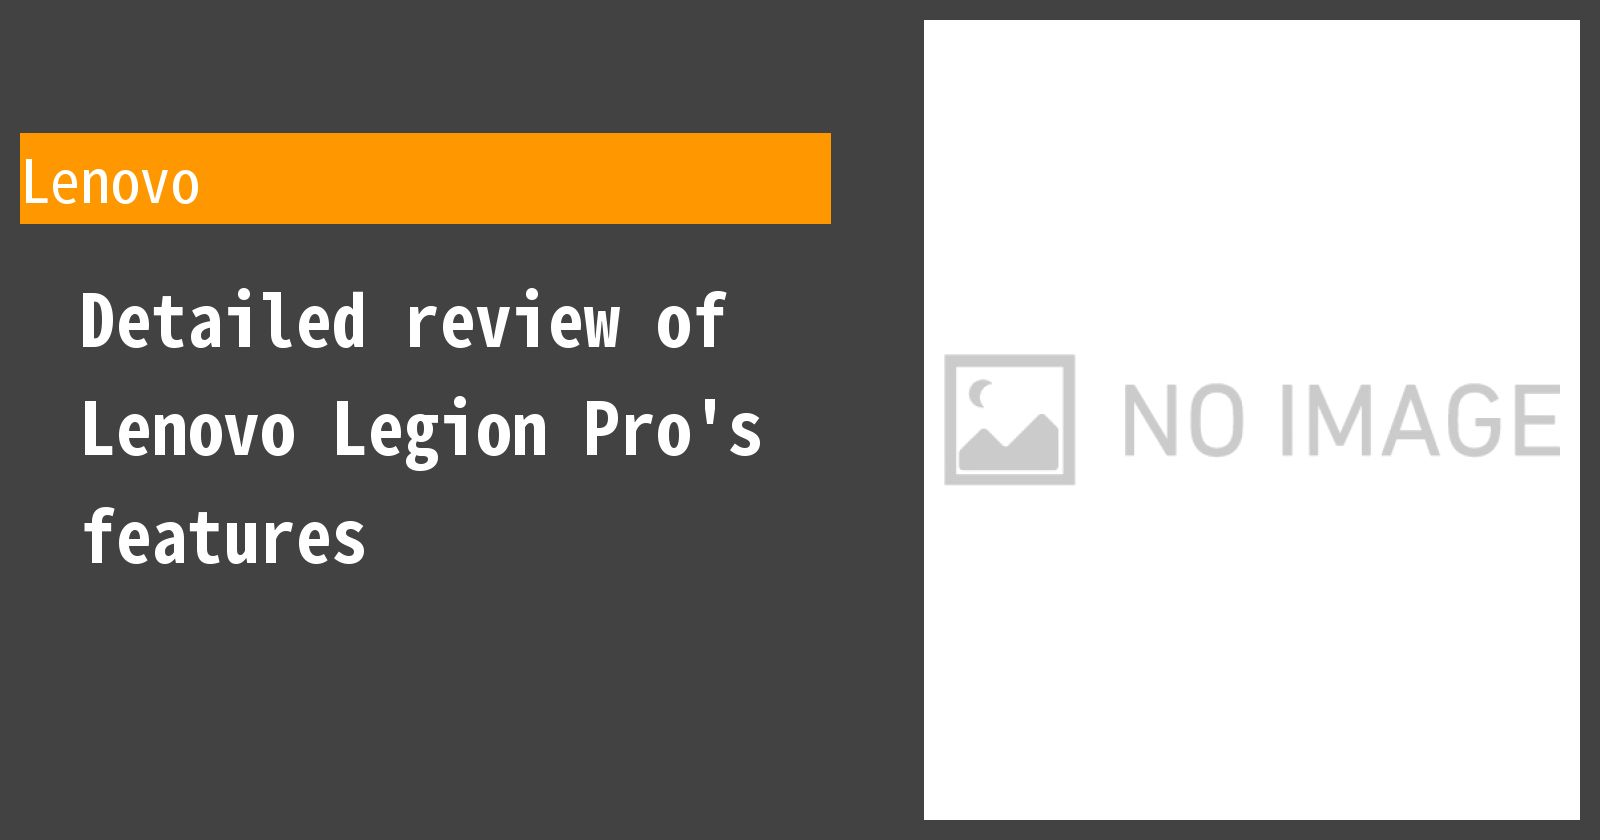 Detailed review of Lenovo Legion Pro's features